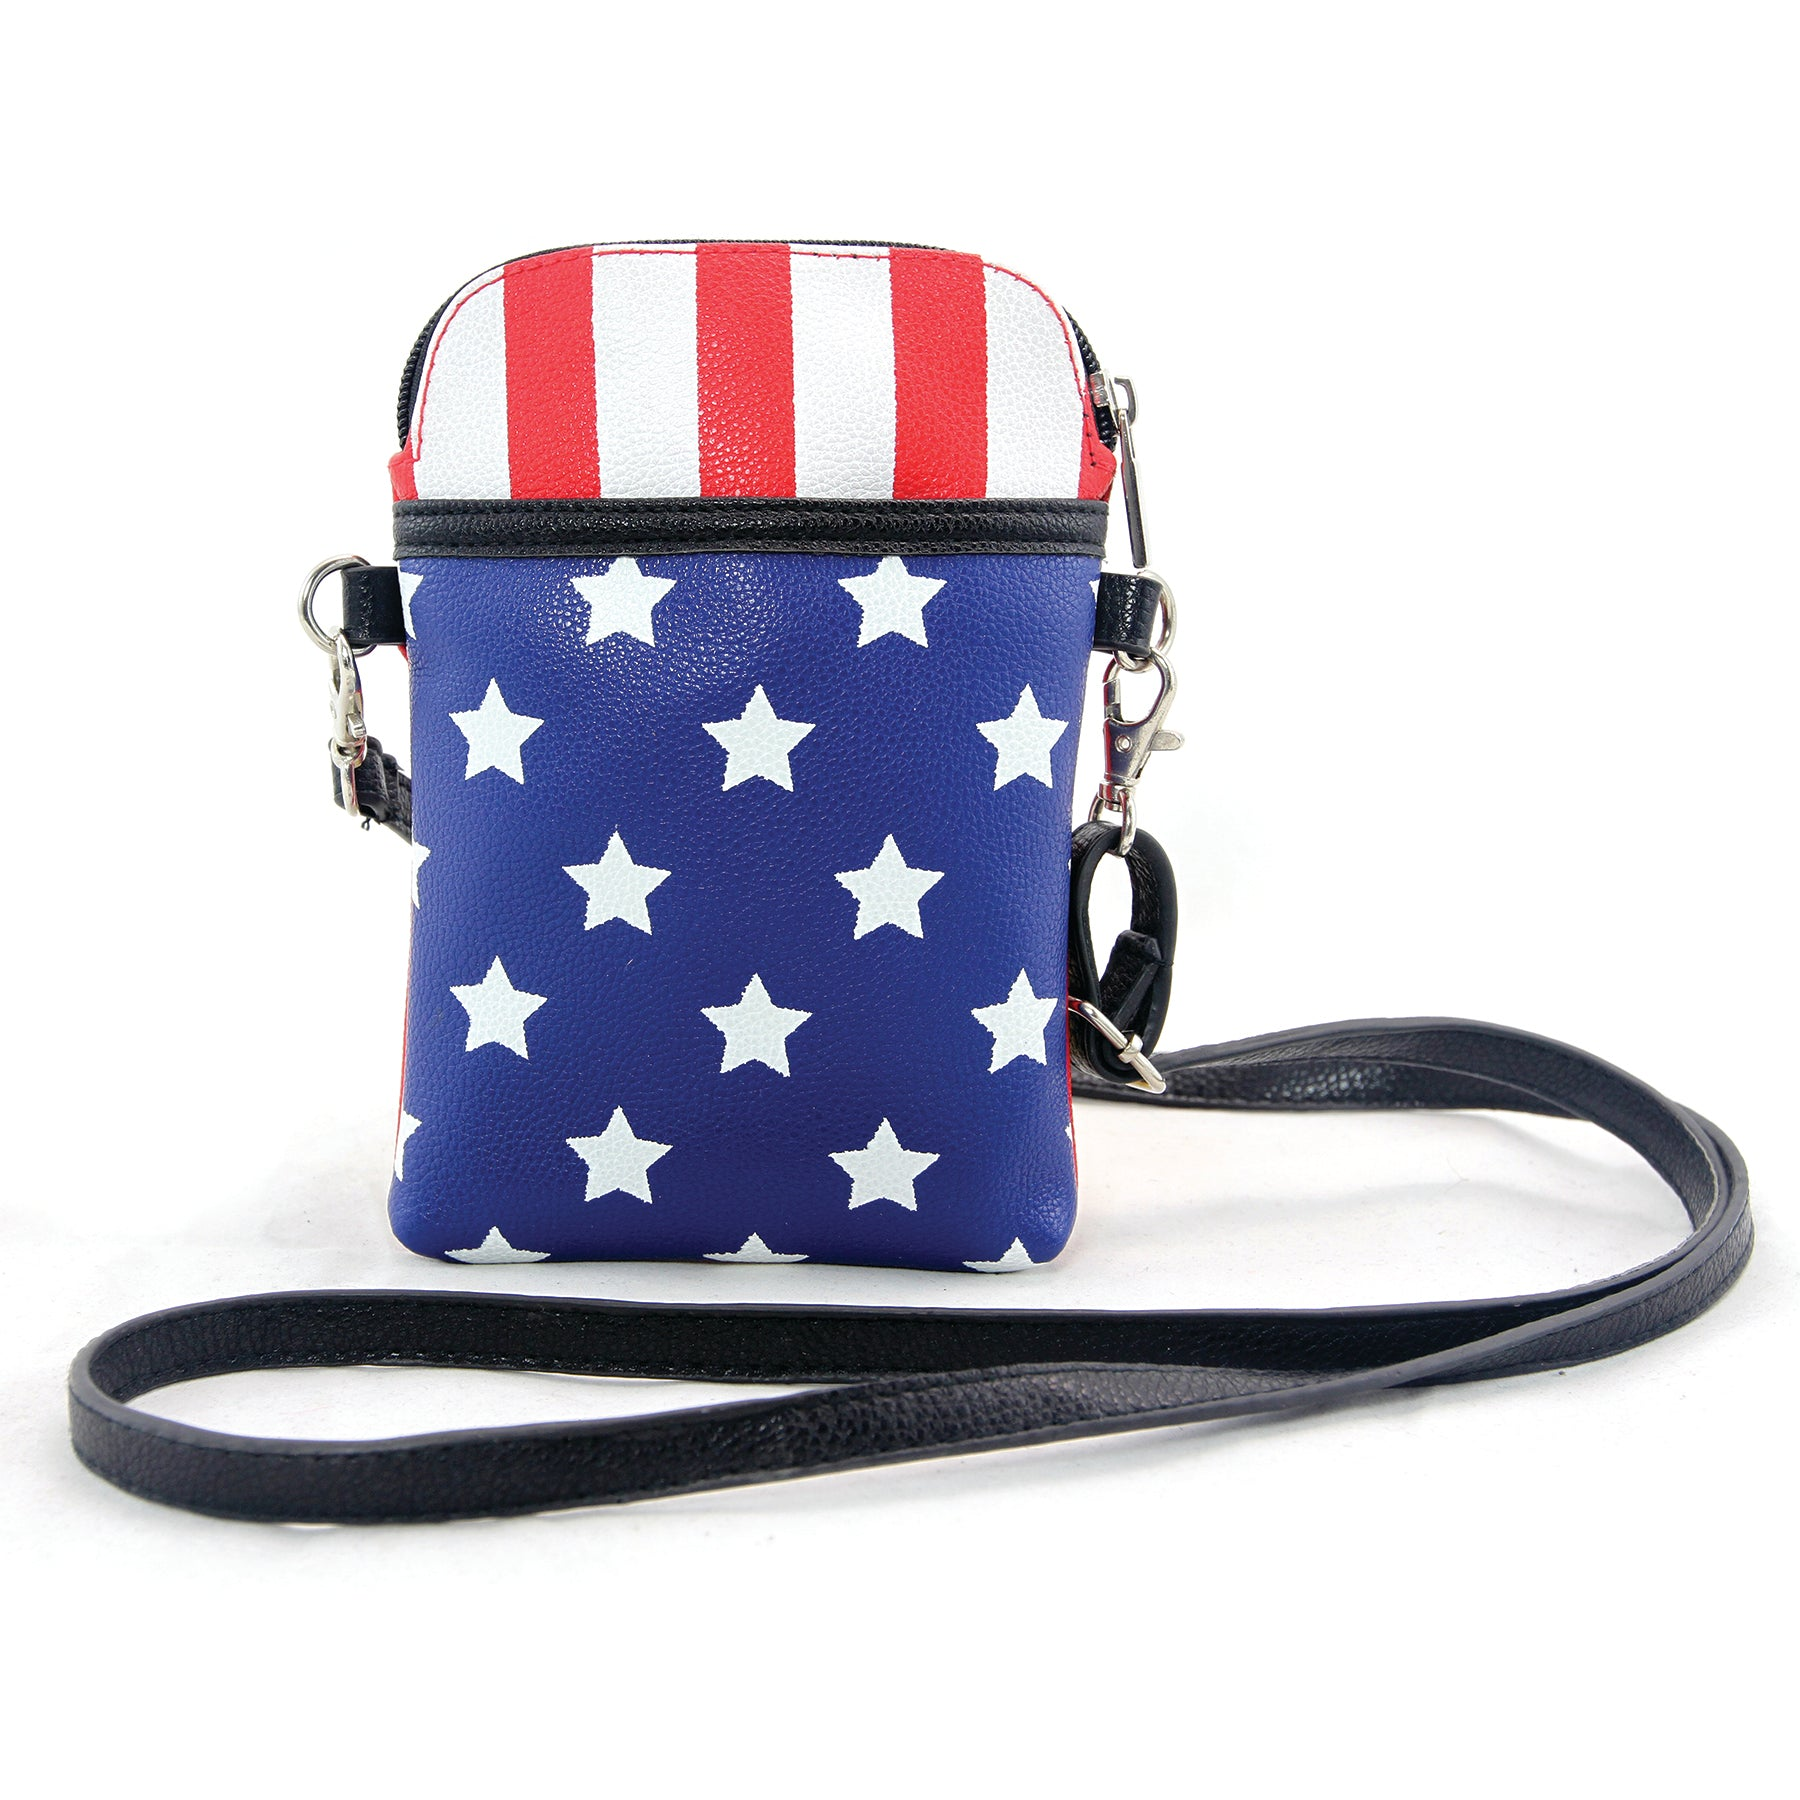 Americana Small Crossbody Bag in Vinyl Material front view